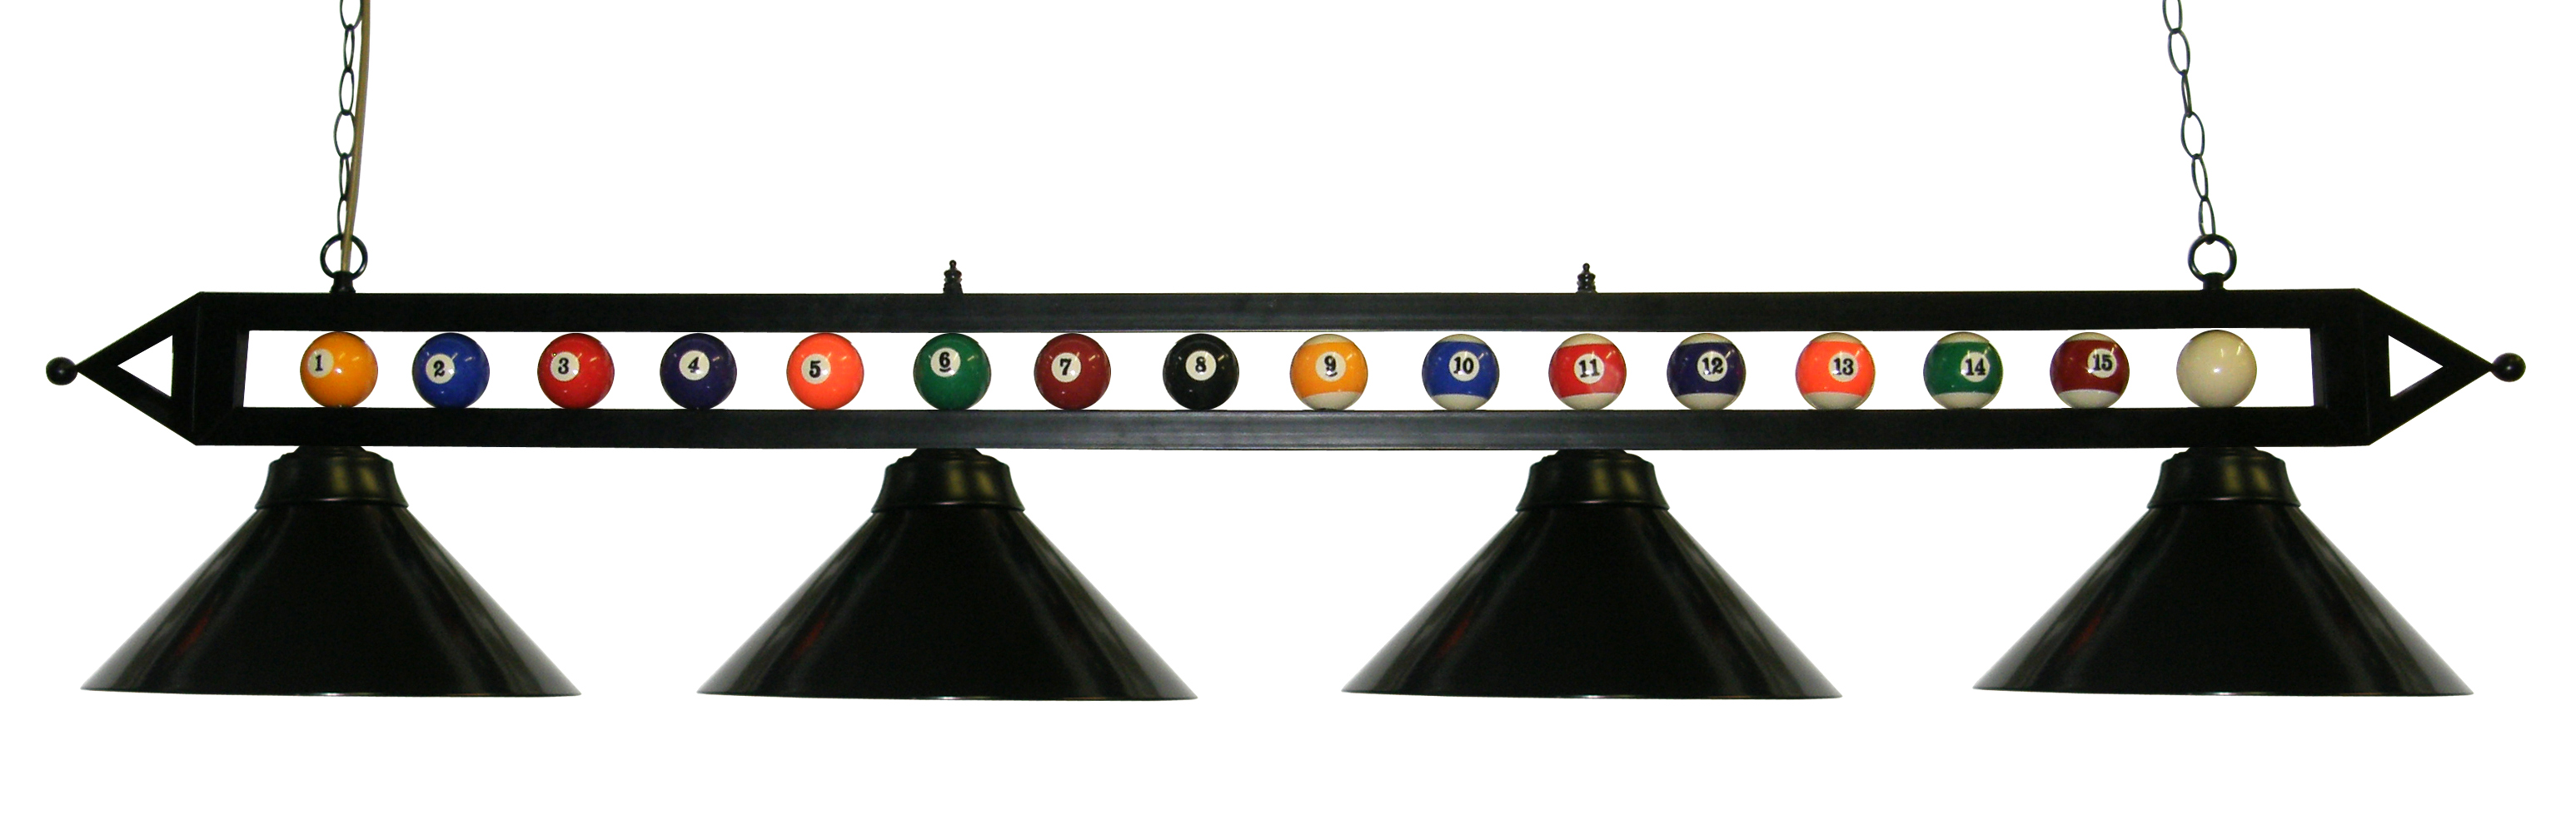 "72"" Black Metal Ball Design Pool Table Light Pool Table Light W Black Metal Shades by"